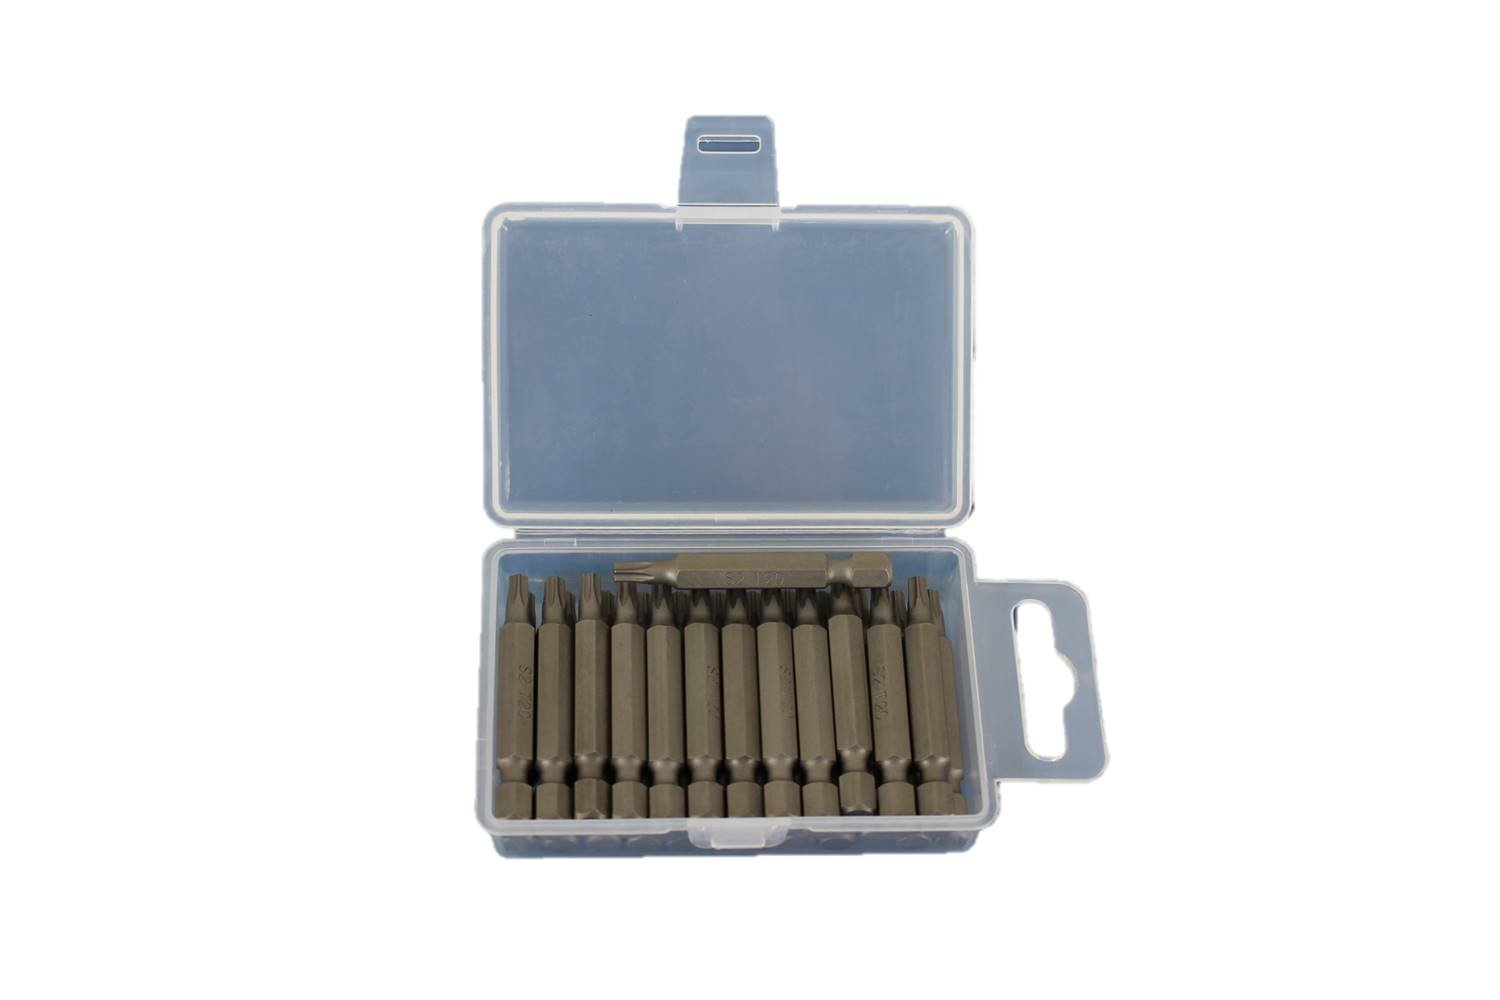 TEMO 25pc T-20 Torx 6 point Impact Ready 2 inch (50mmL) Length Screwdriver Insert Bits Hex Shank with Quick Release Slot